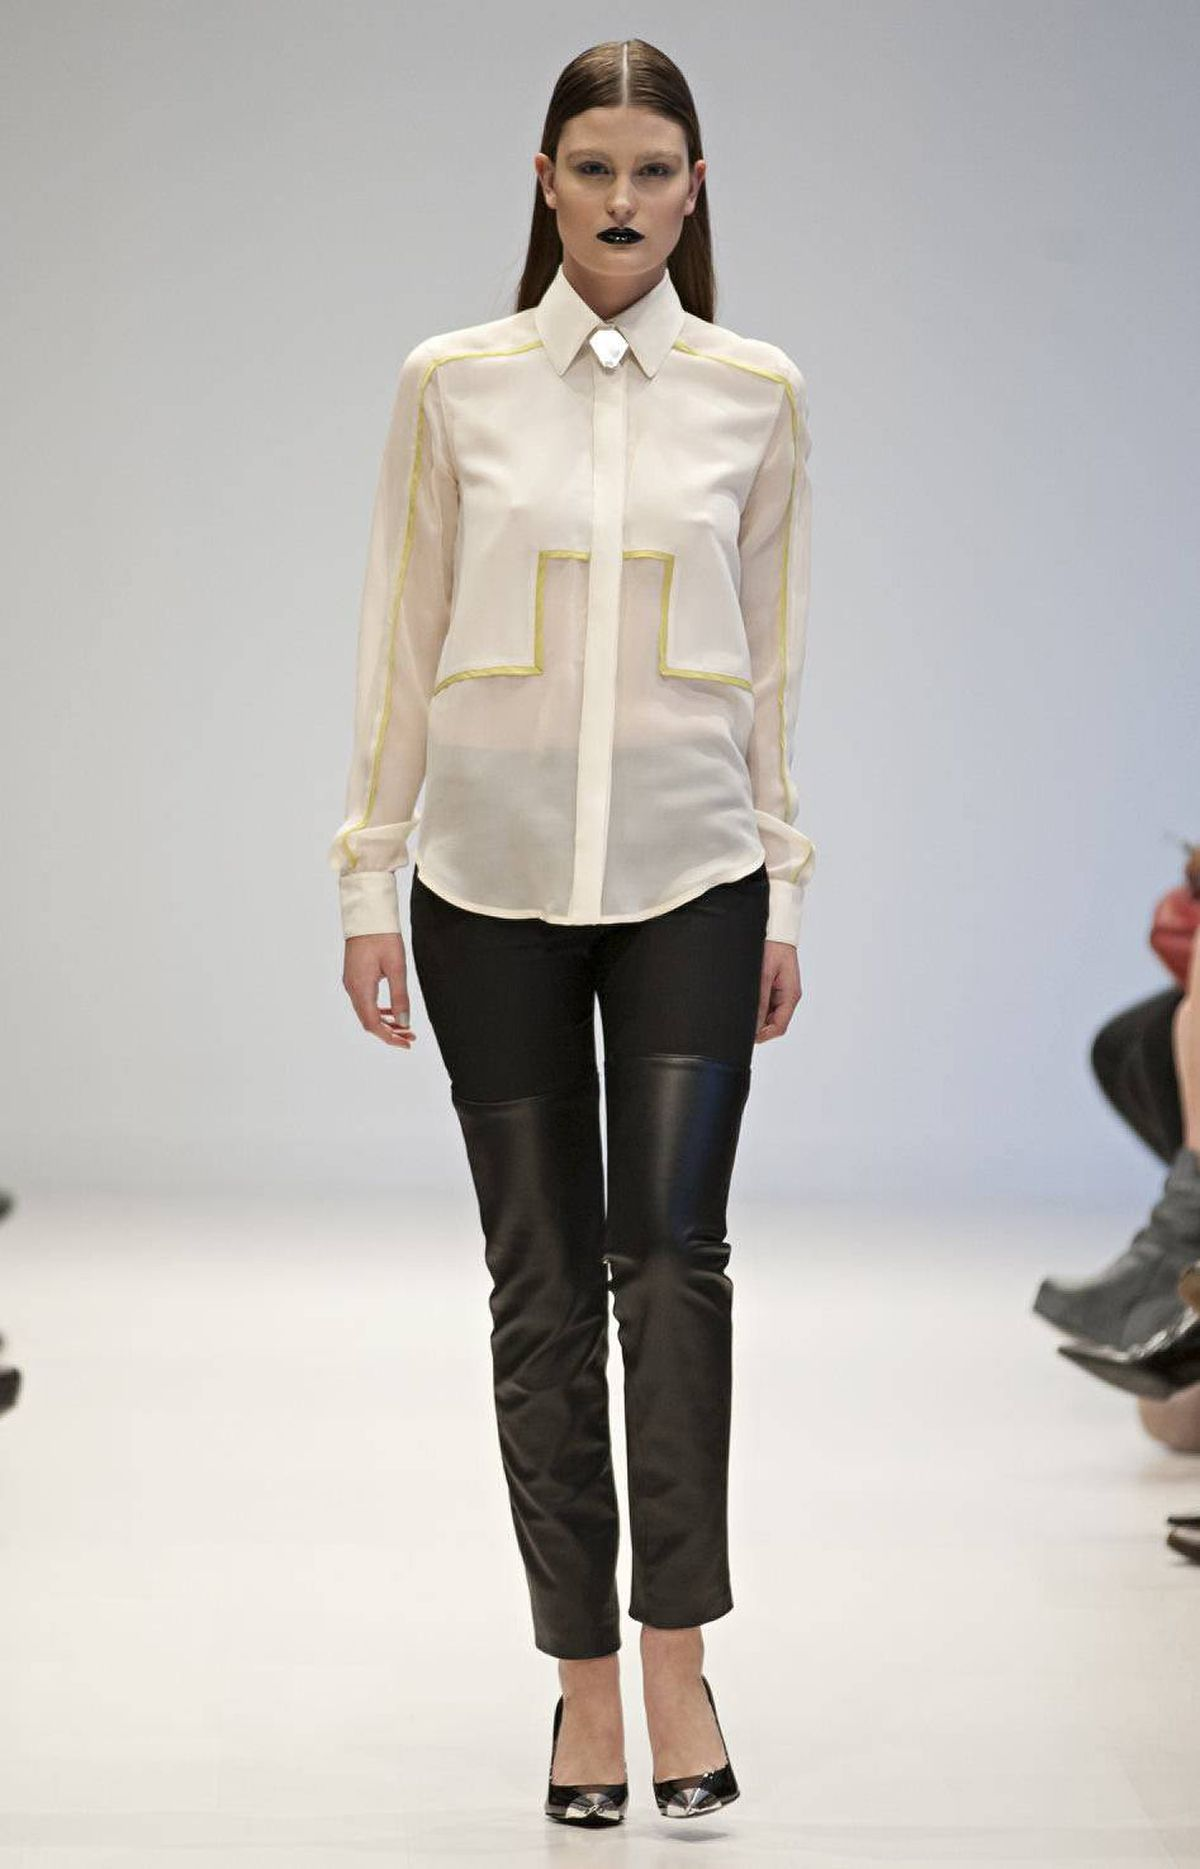 Graphic elements were present even in the jewellery, which was cool and understated, designed by Toronto's Ana Bogdanovic. (Yes, she made the silver toe caps on the stilettos, too.) Necklaces were often styled with button-up blouses in silk, most effectively this cream number with green piping.